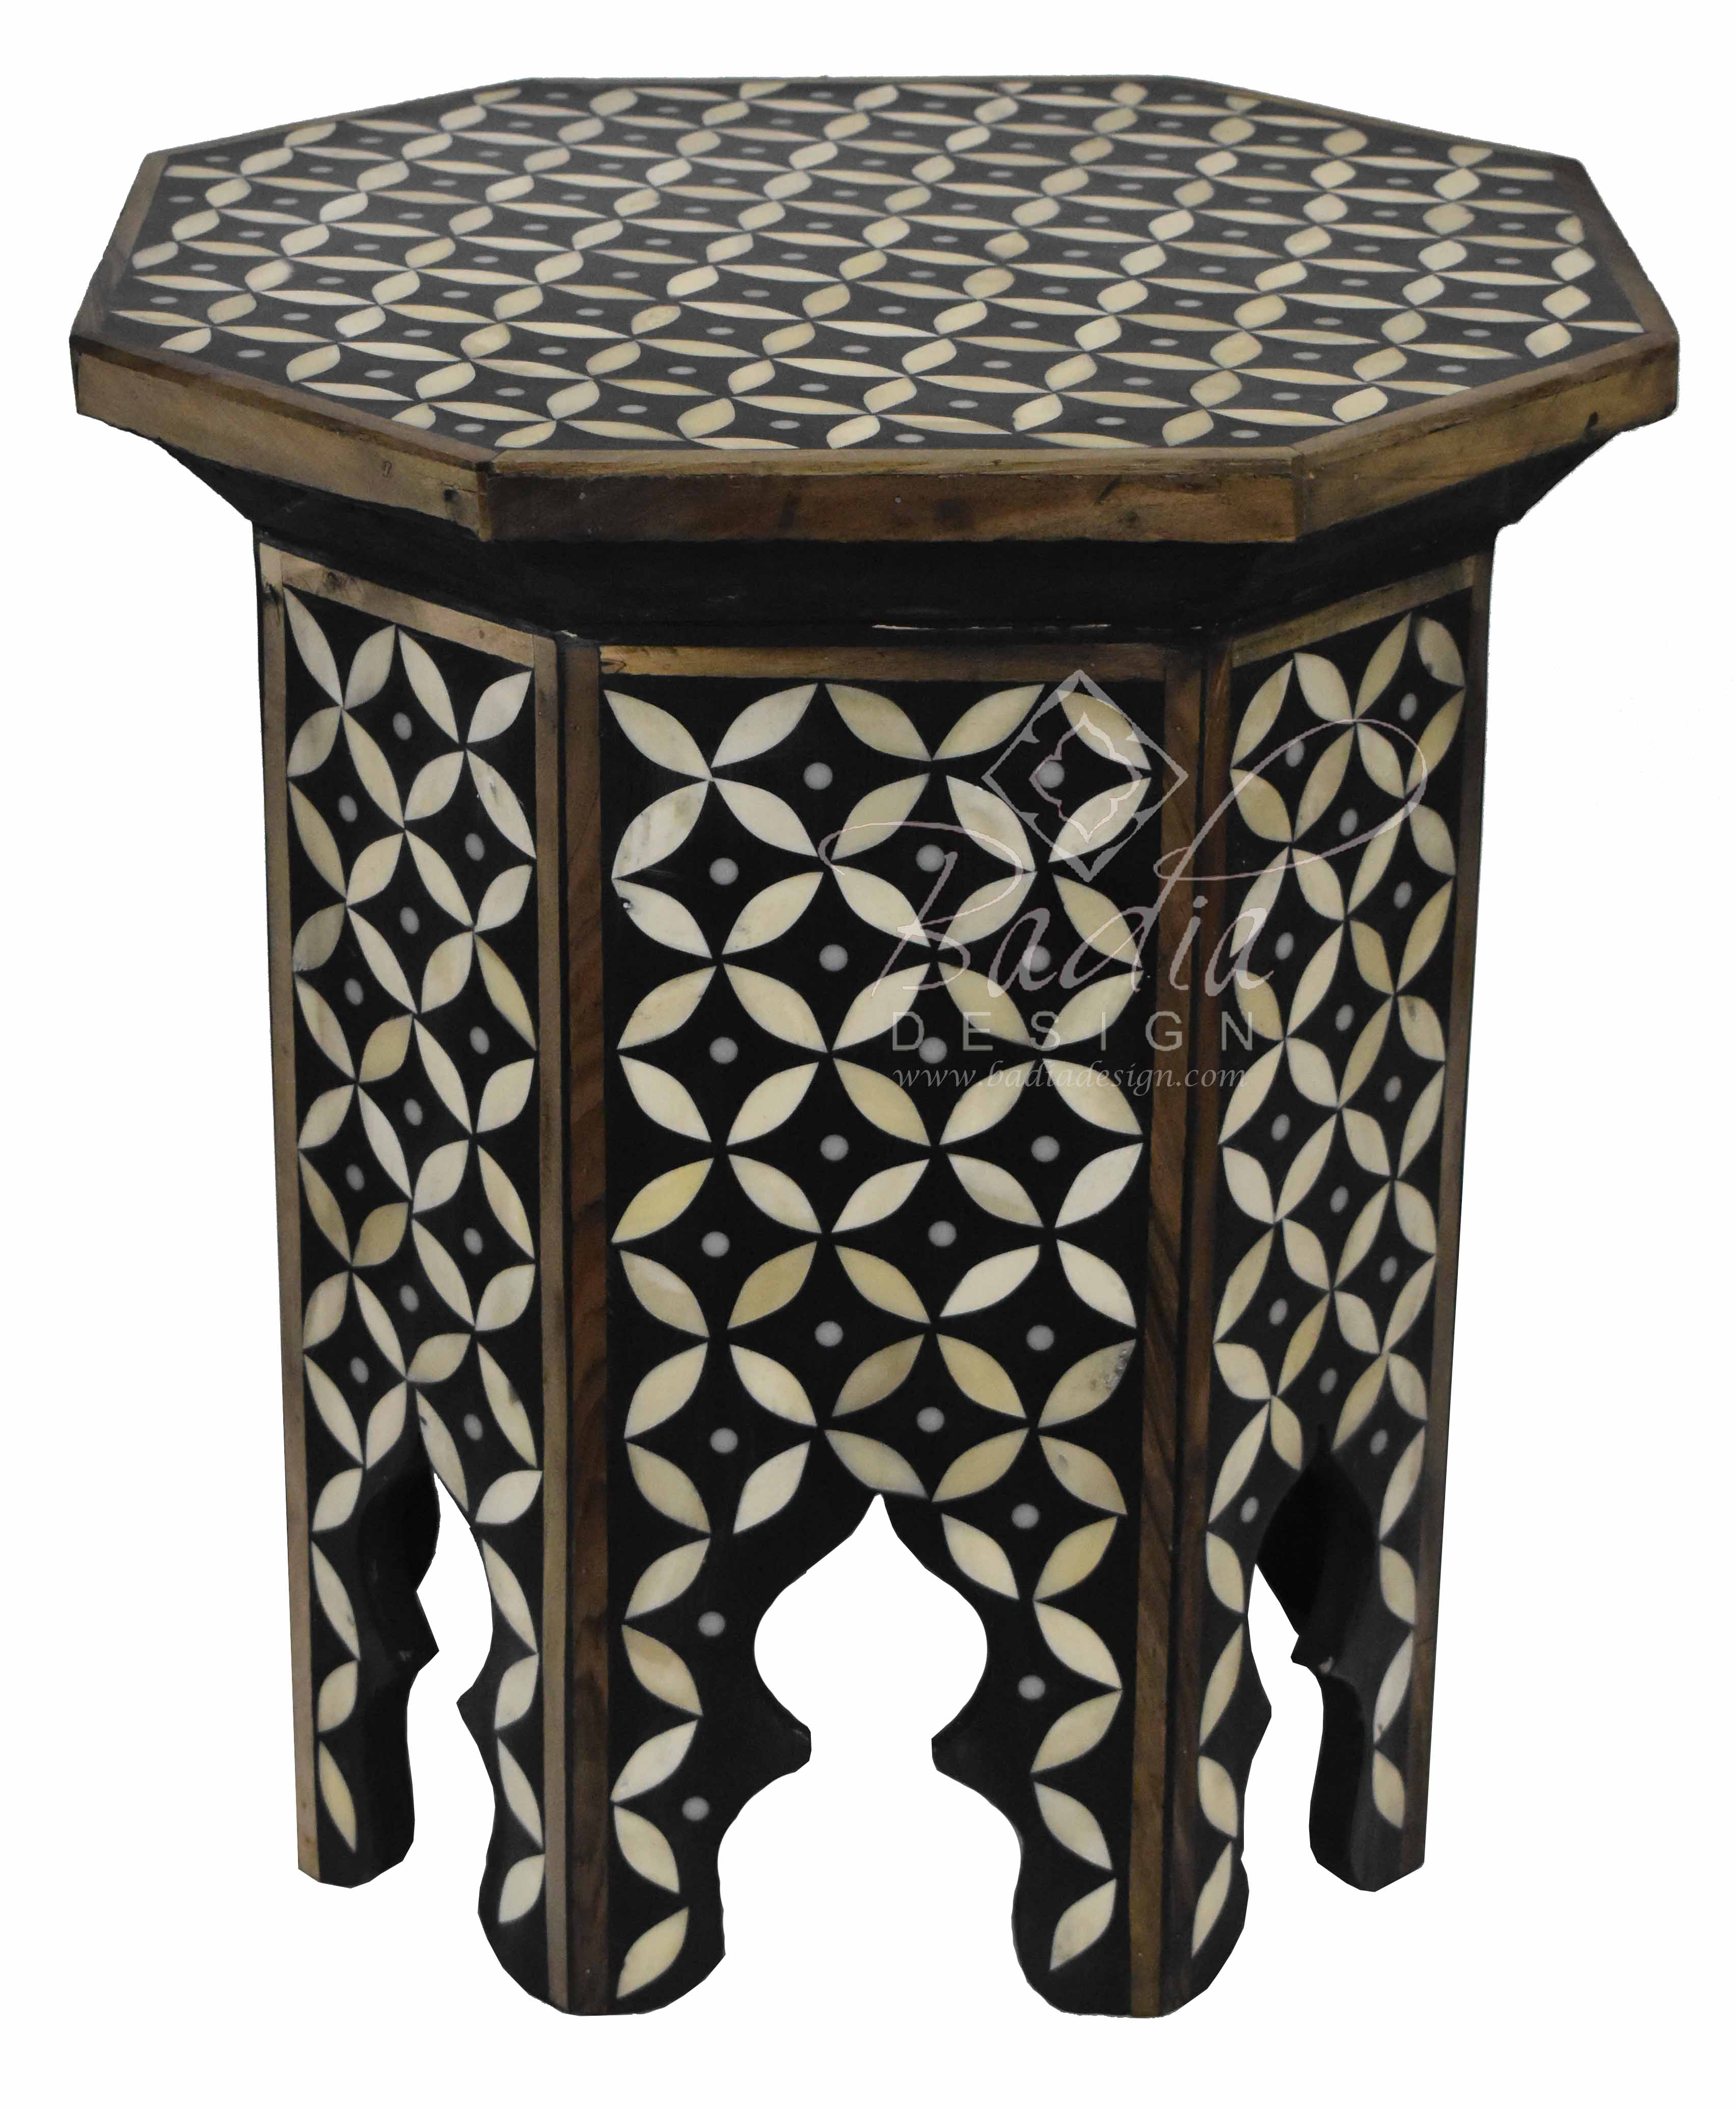 moroccan-inlay-camel-bone-side-table-mop-st101-1.jpg